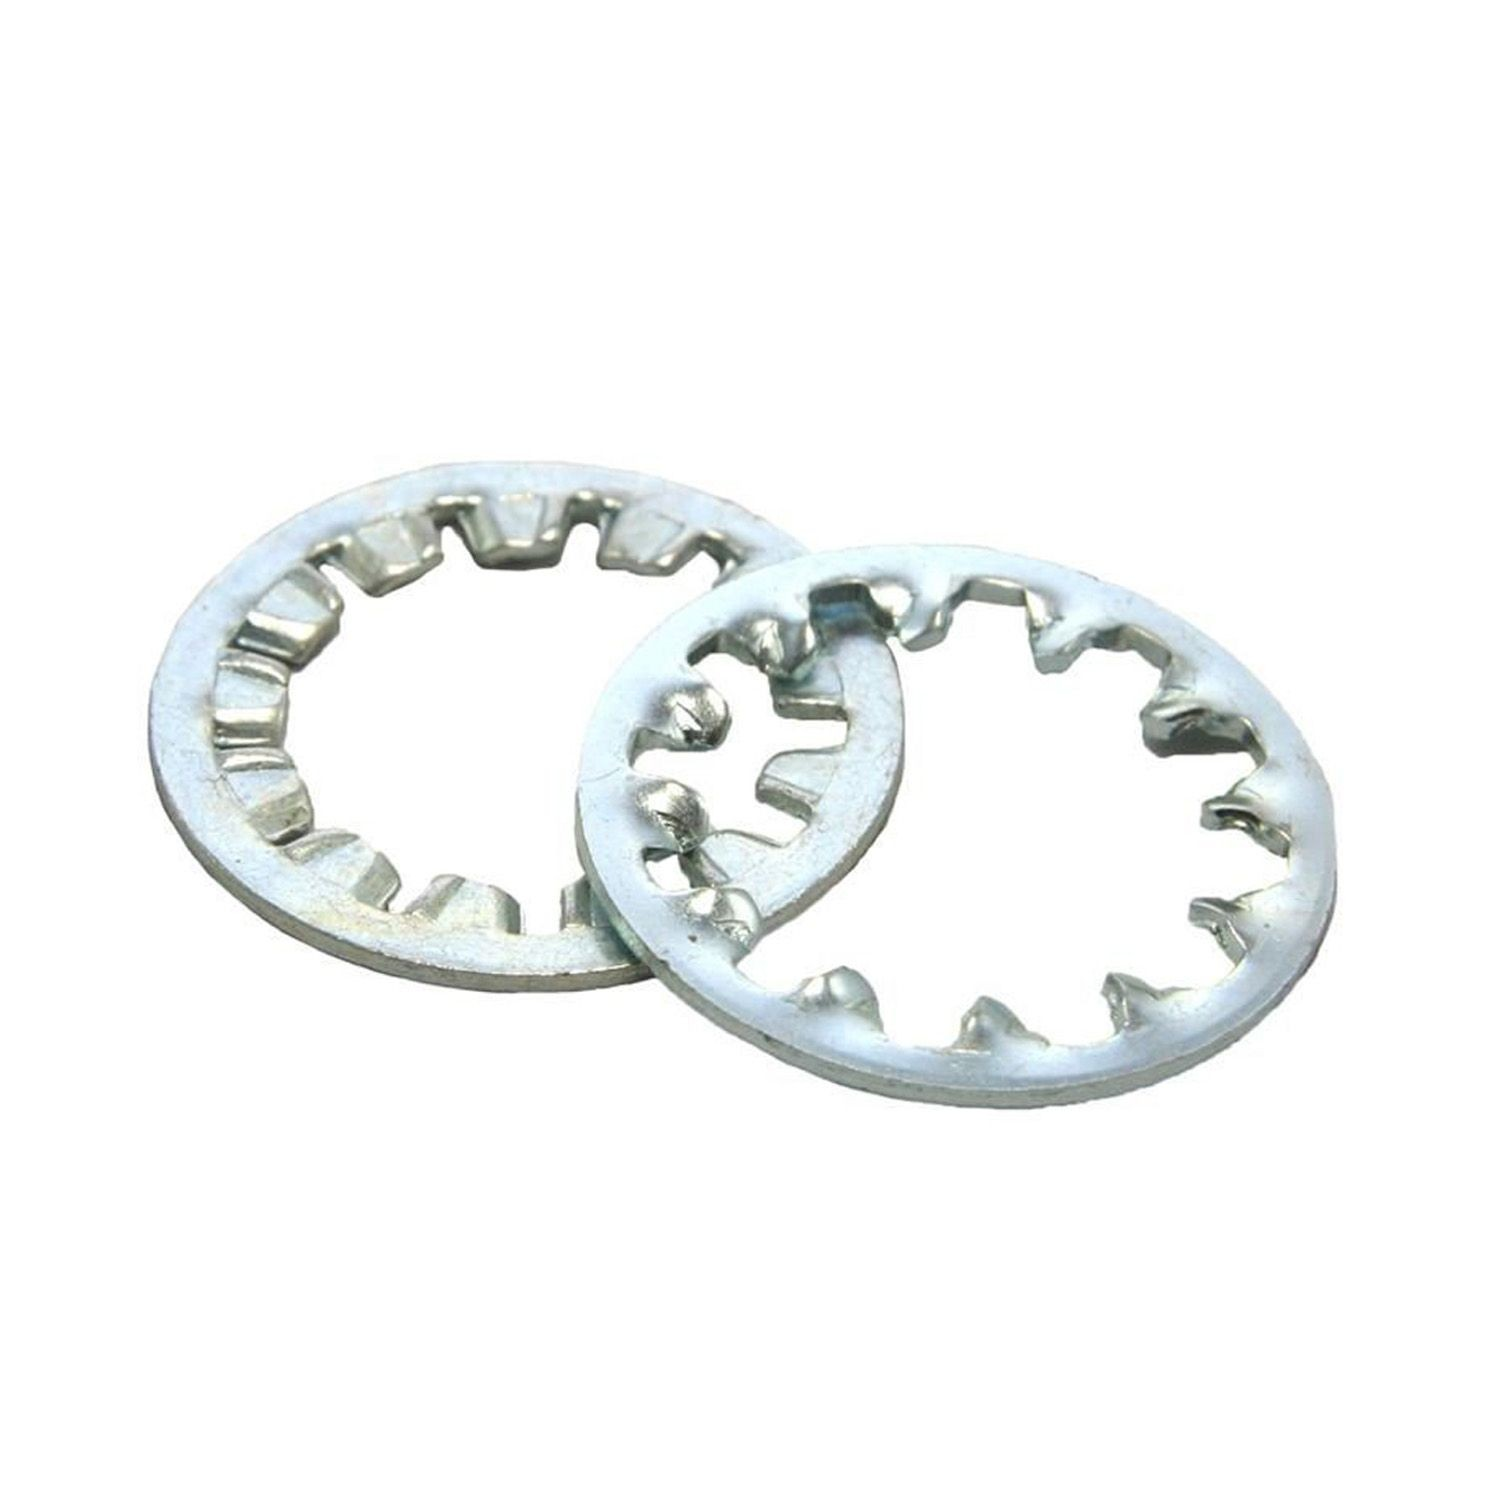 #10 Zinc Plated Internal Tooth Lock Washer